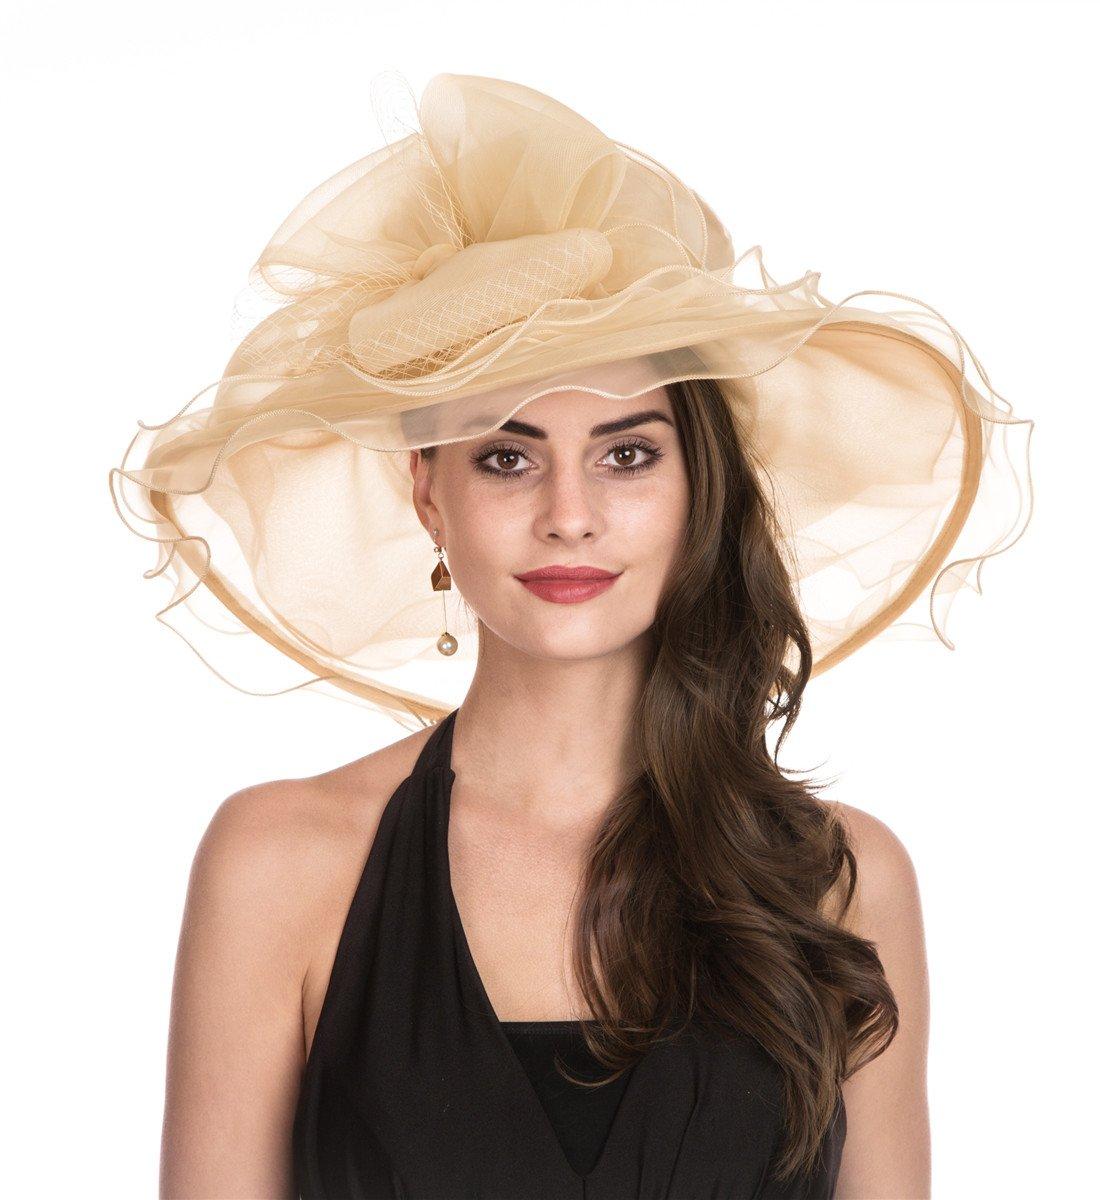 Lucky Leaf Women Kentucky Derby Church Cap Wide Brim Summer Sun Hat for Party Wedding (New Champagne)